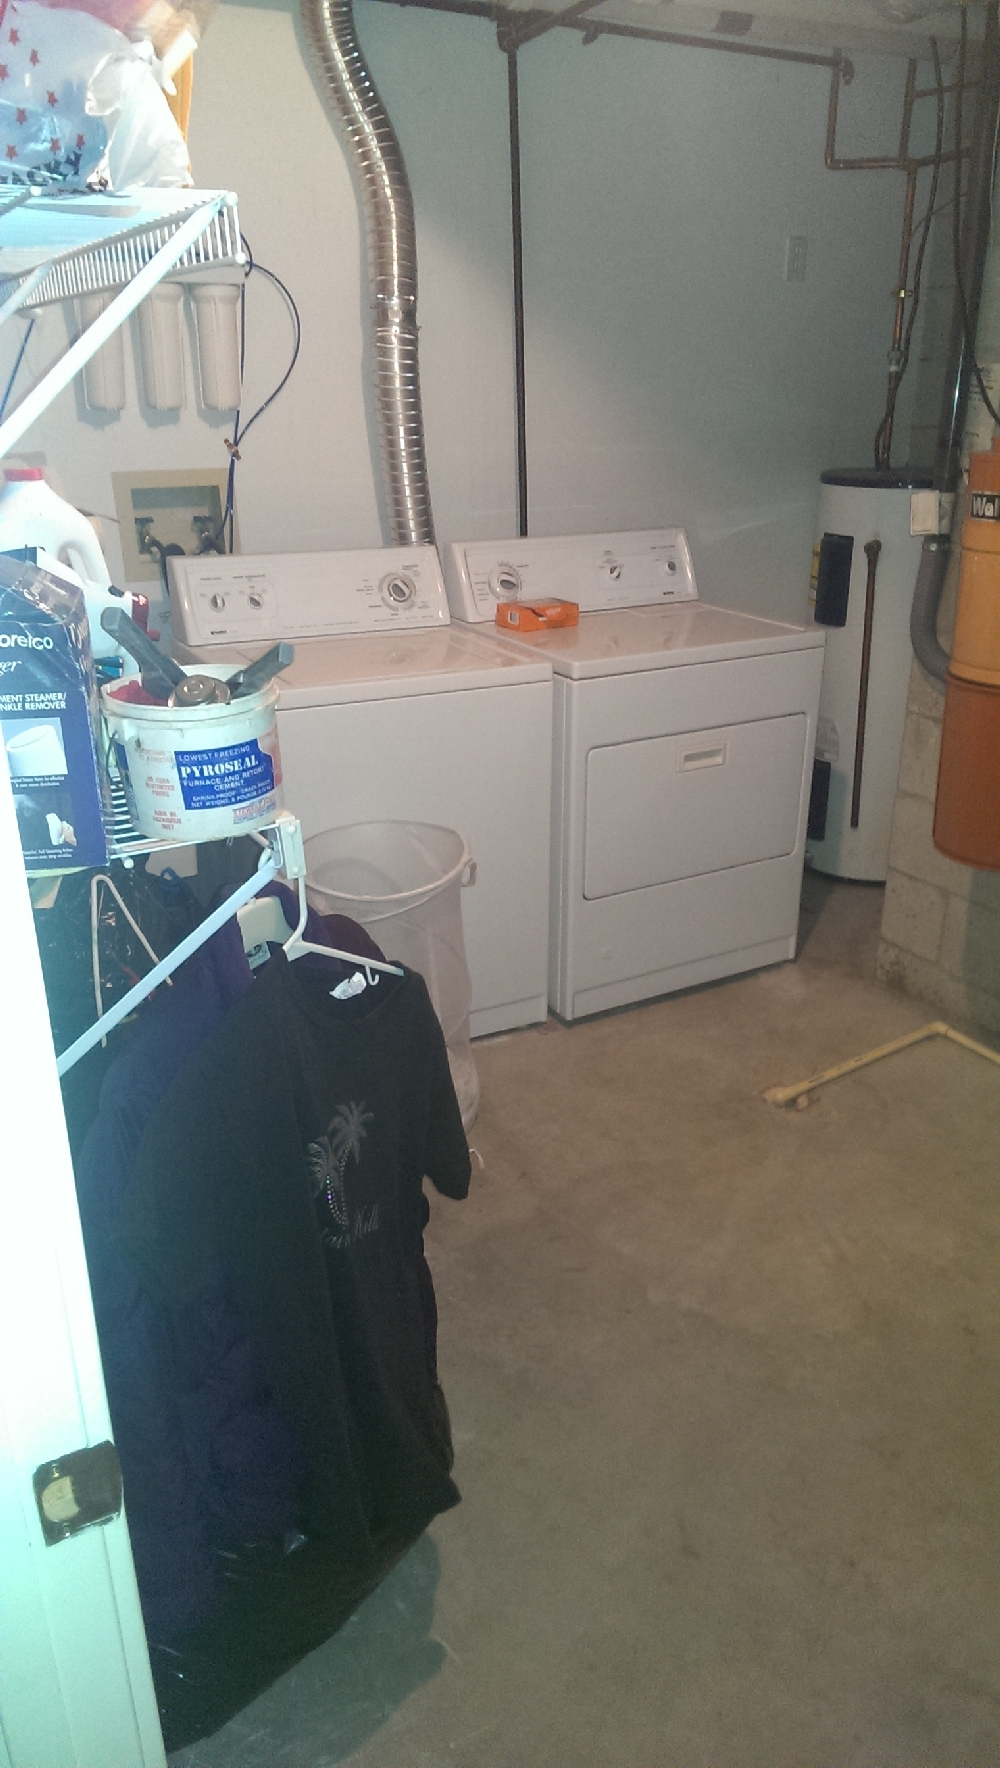 basement- washer and dryer in furnace room area